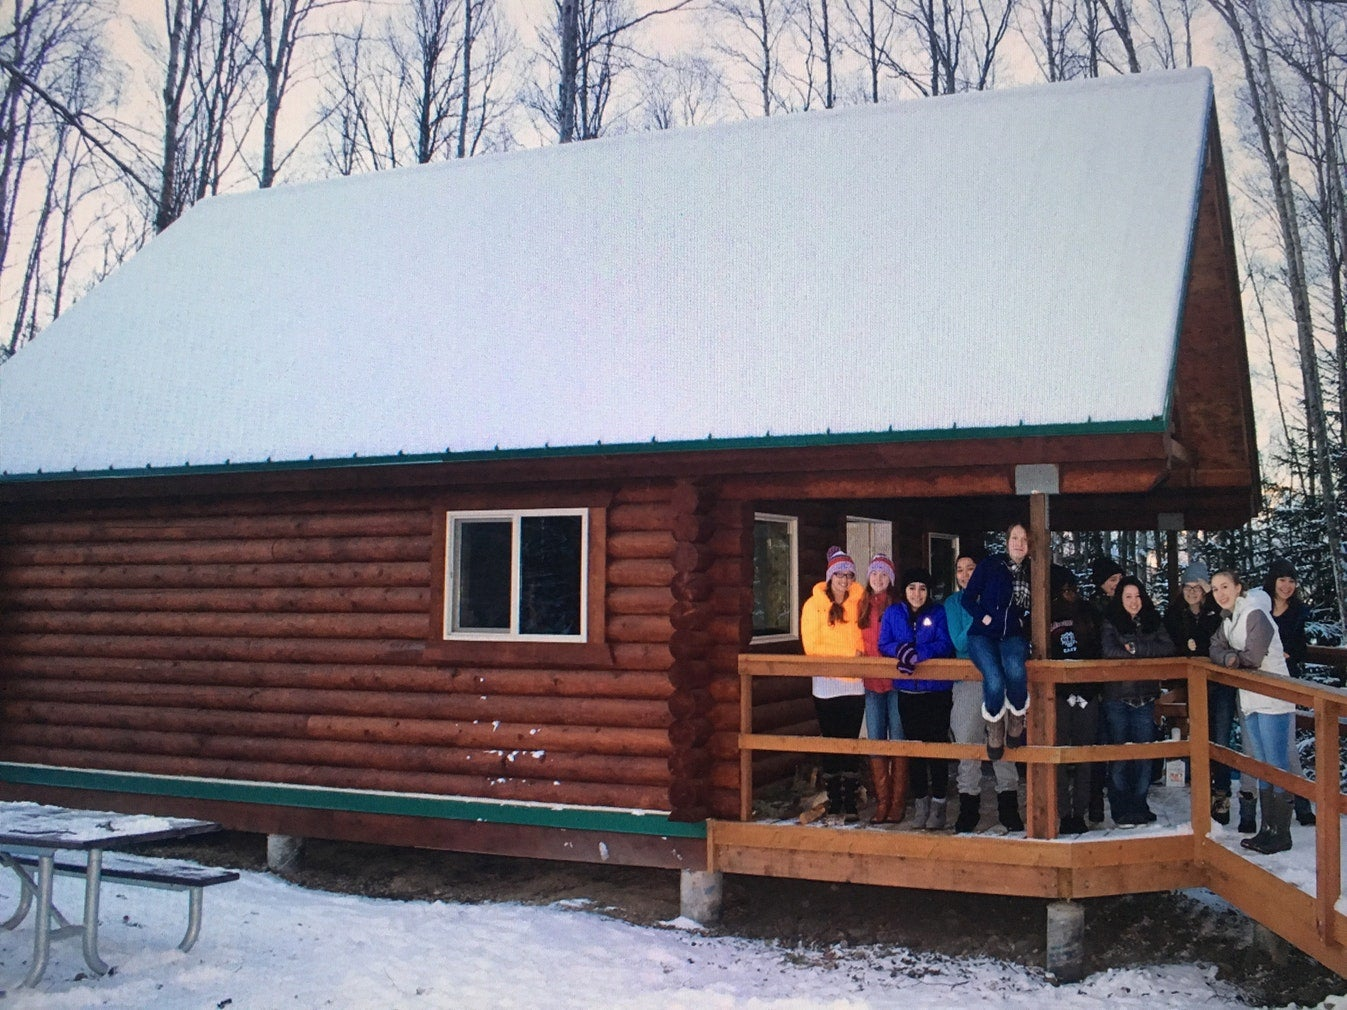 a group of campers pose for a photo on the front porch of their snowy cabin in bird creek, ak